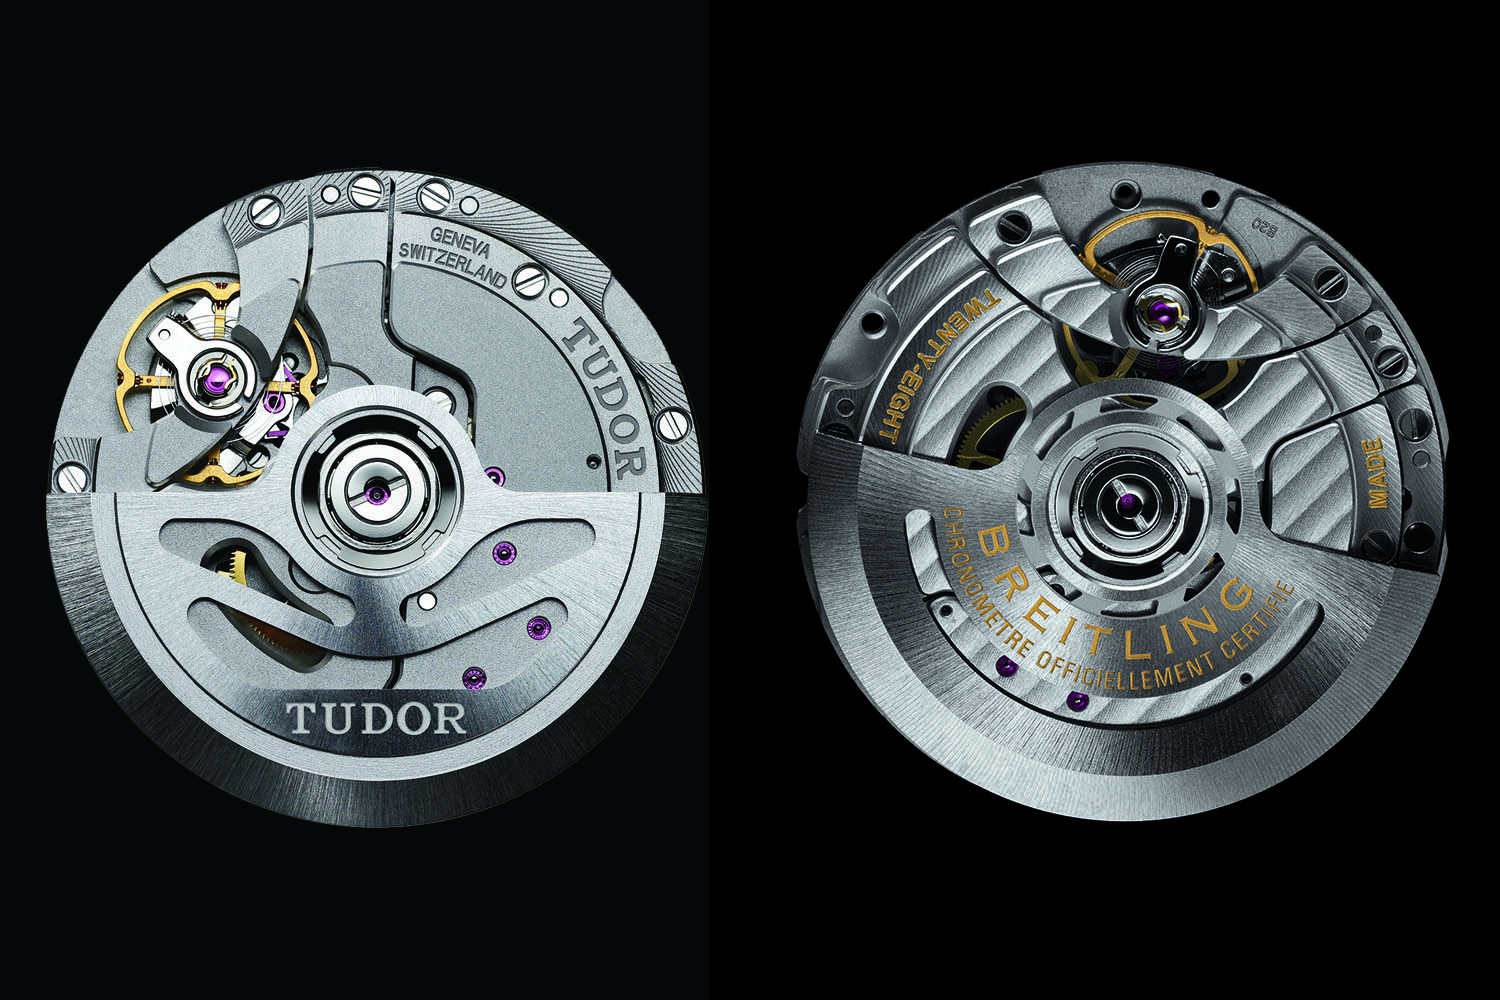 Tudor MT5612 - Breitling B20 movement